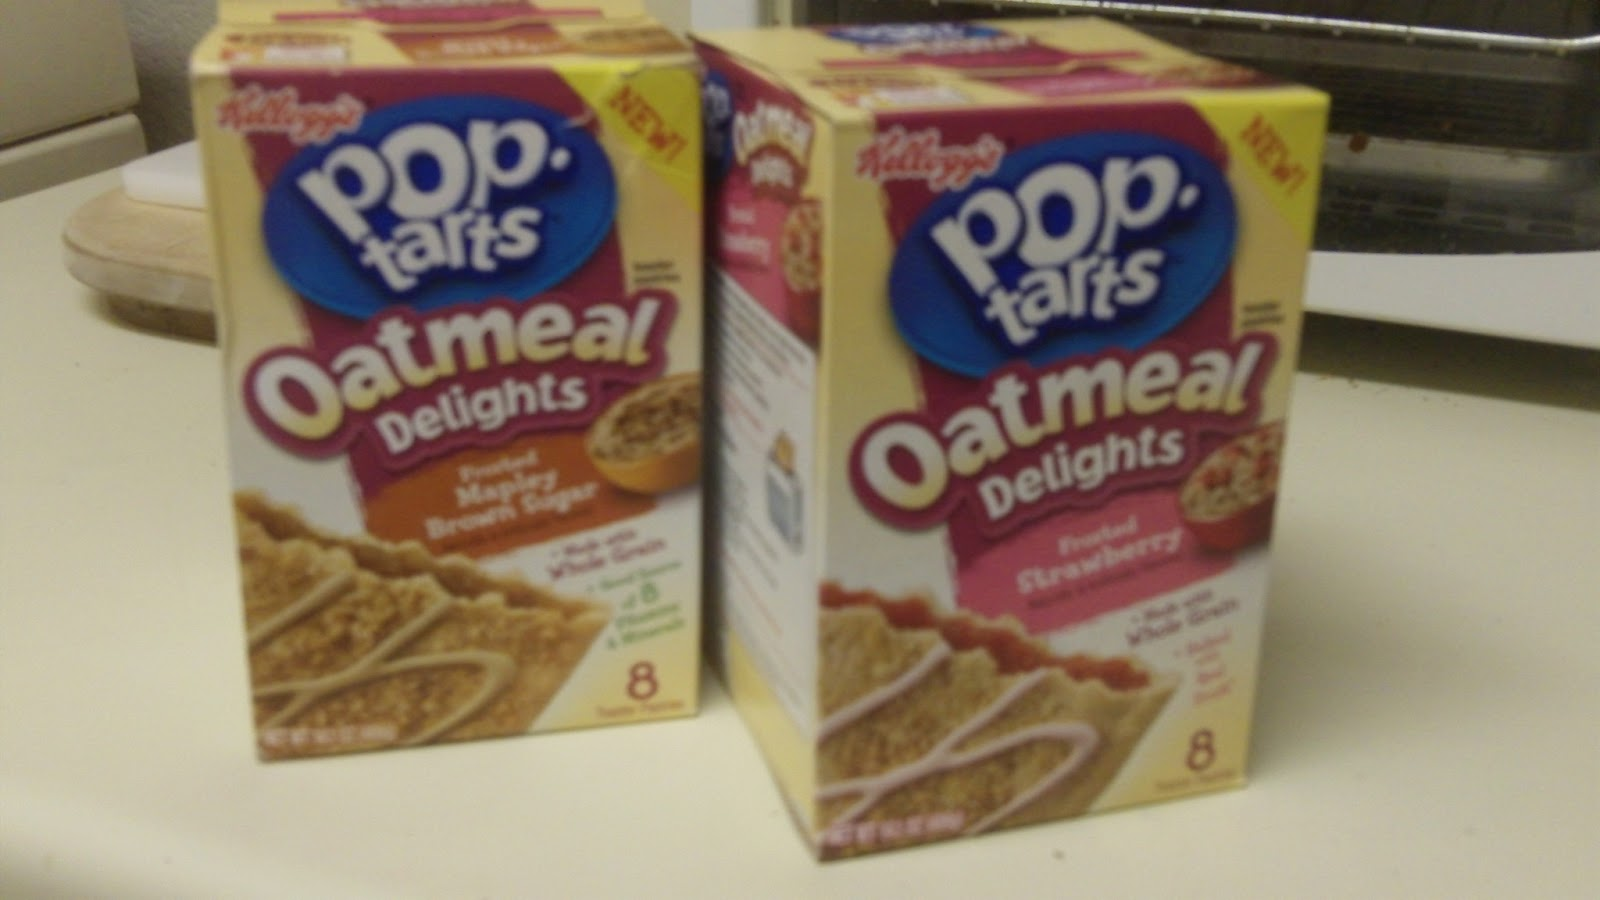 THE INTERNET IS IN AMERICA: The New Pop-Tarts Oatmeal ...